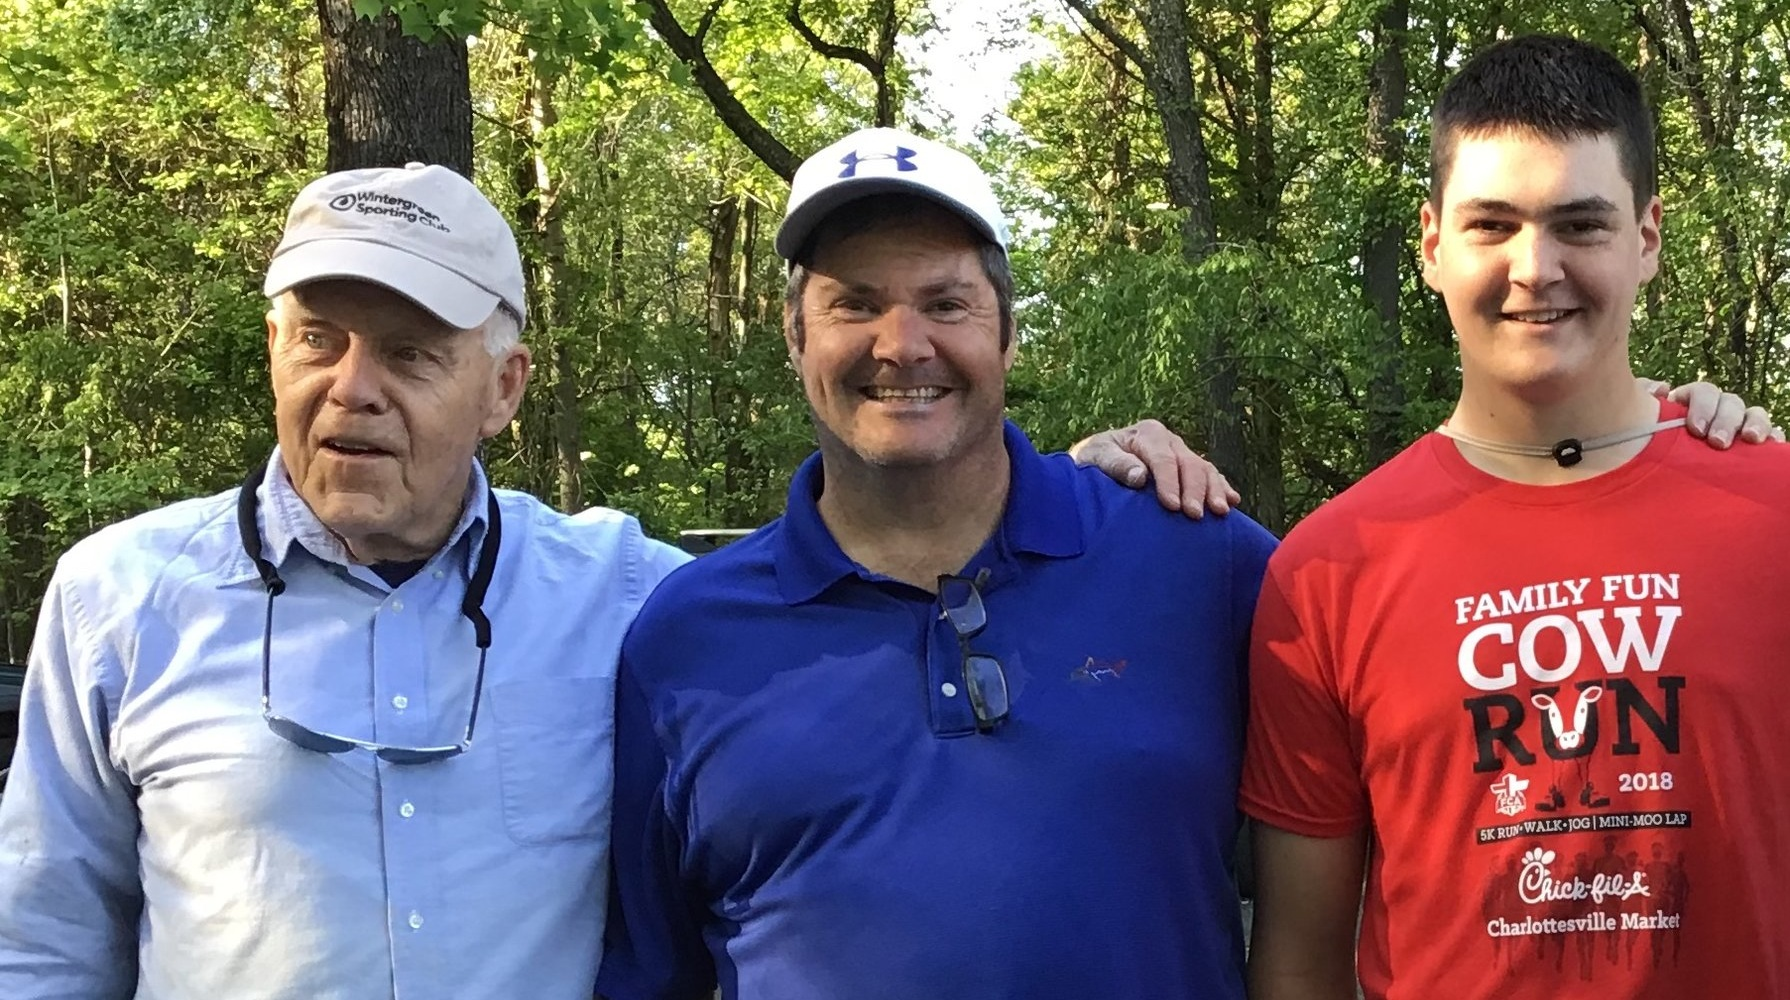 Bass tournament chief Bruce Henderson (left) with father-son team Tom and Brennan Stone